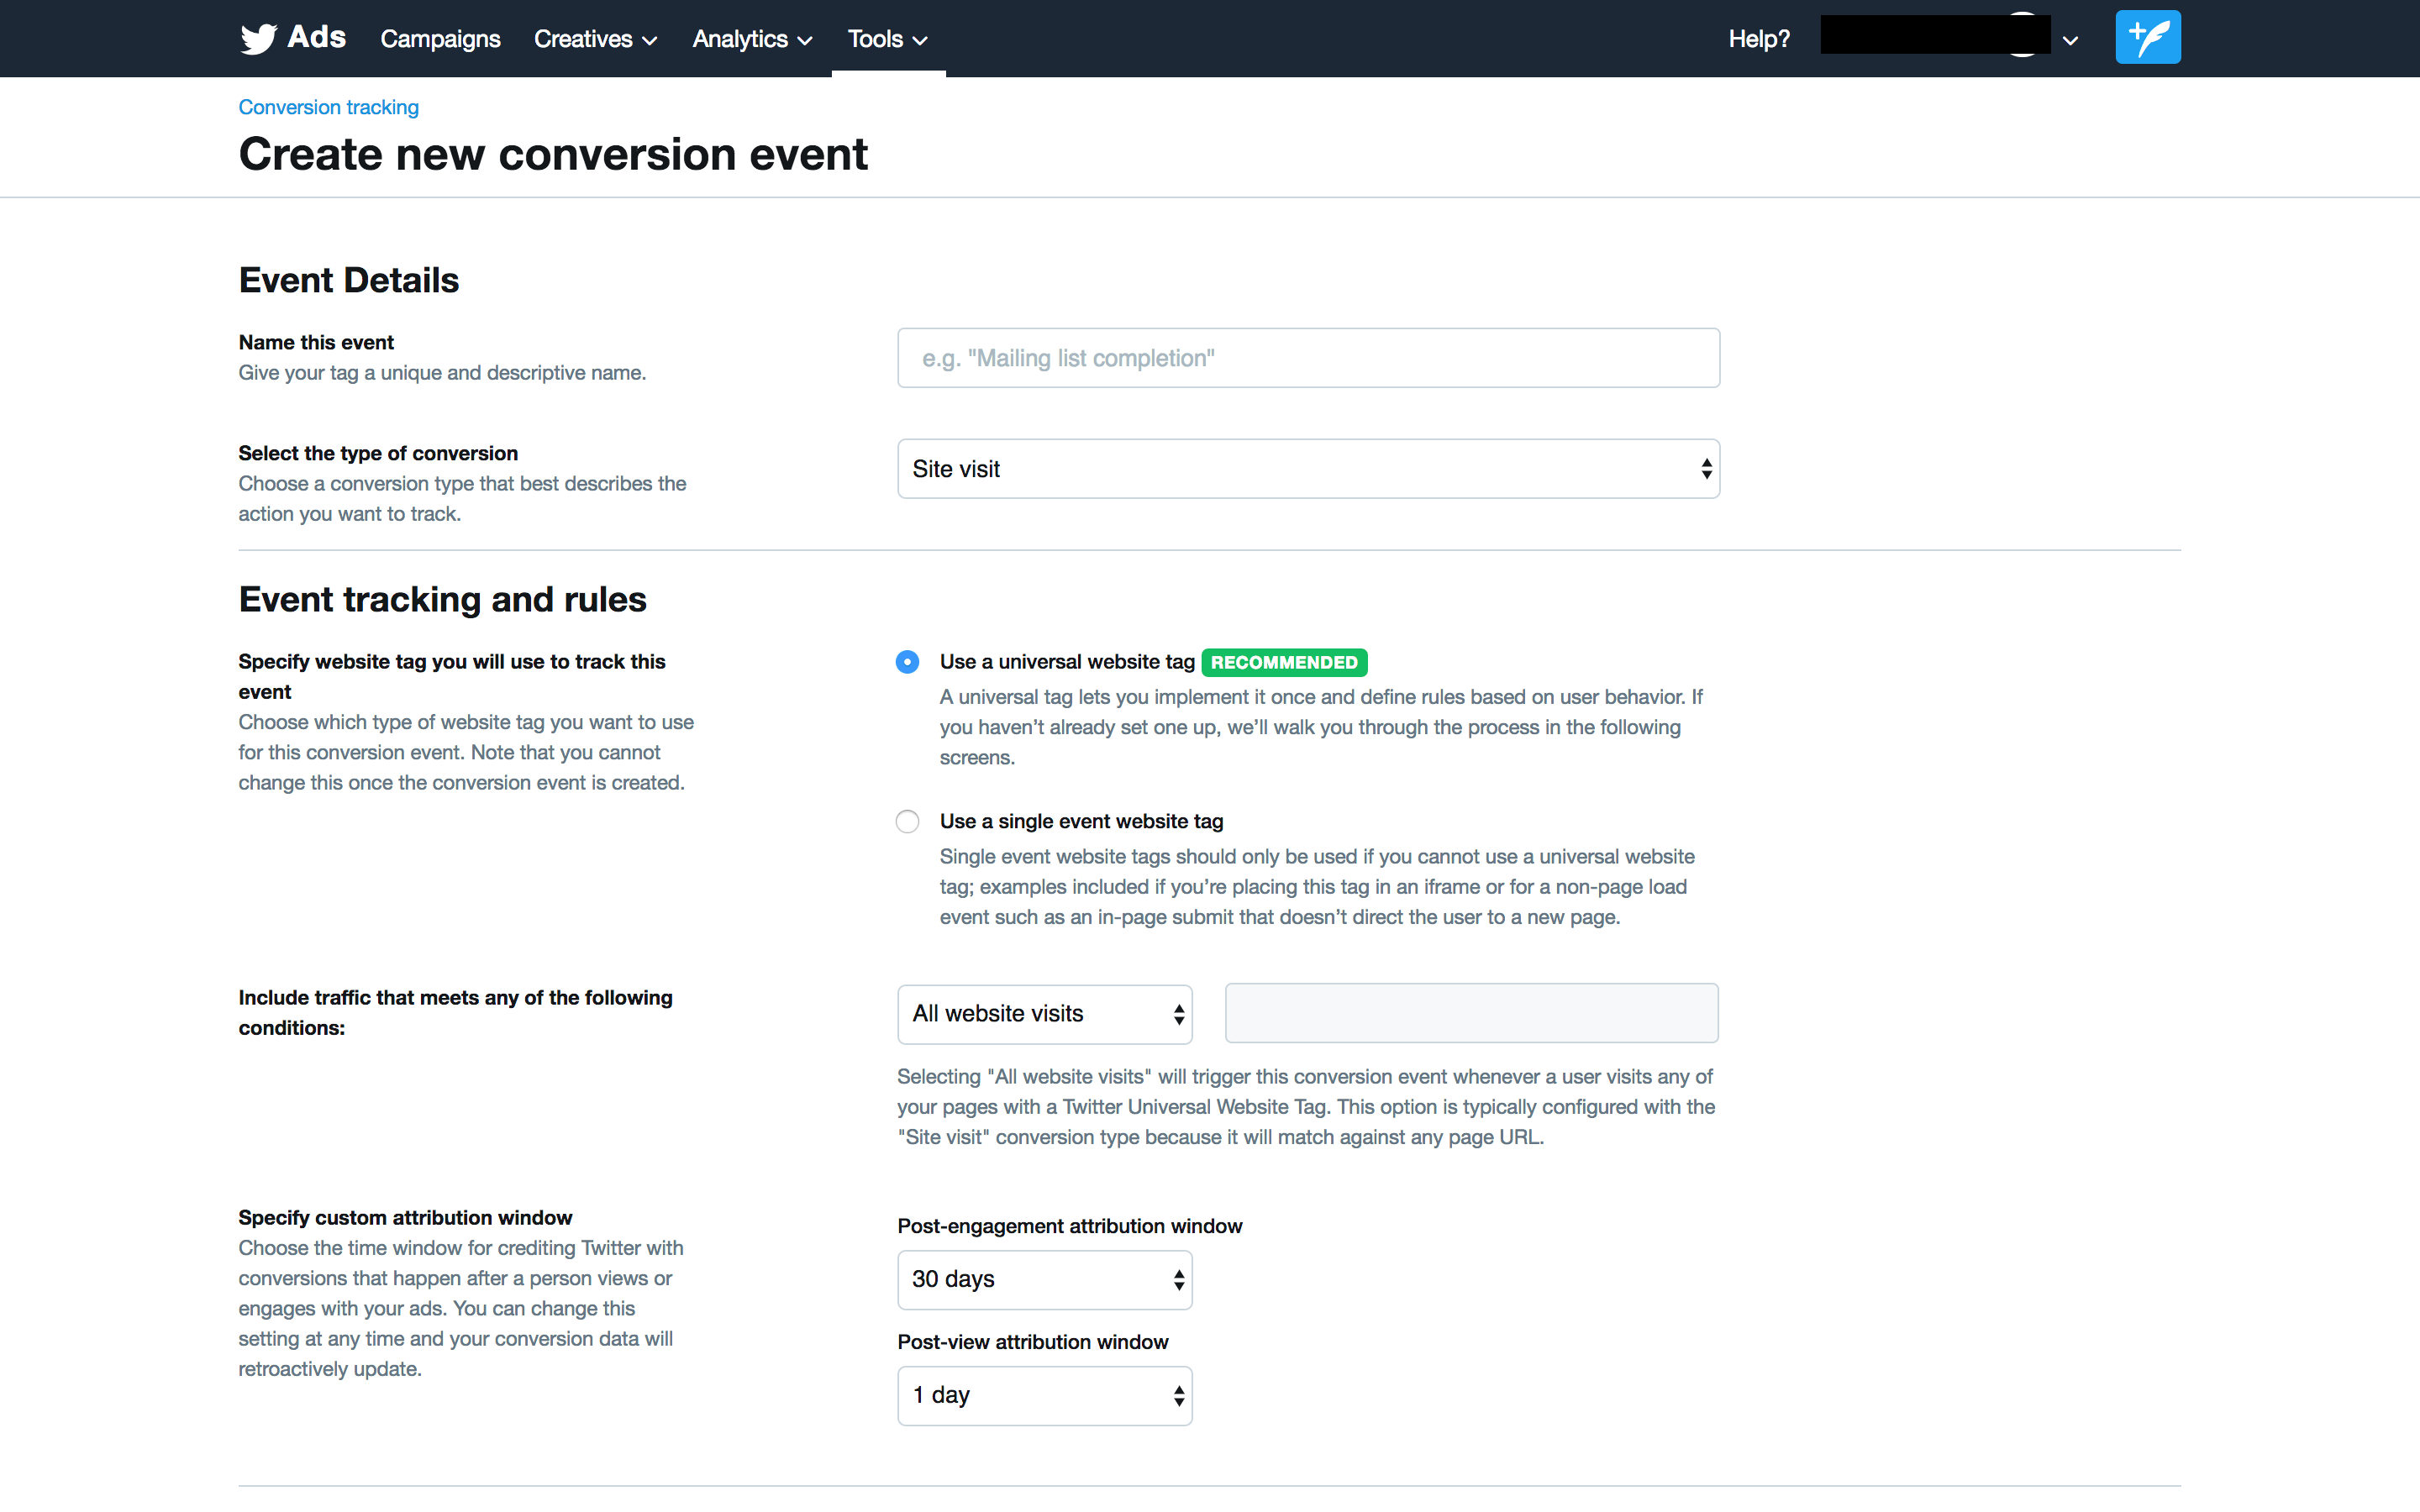 """Create new conversion event"" screen for Twitter Ads"